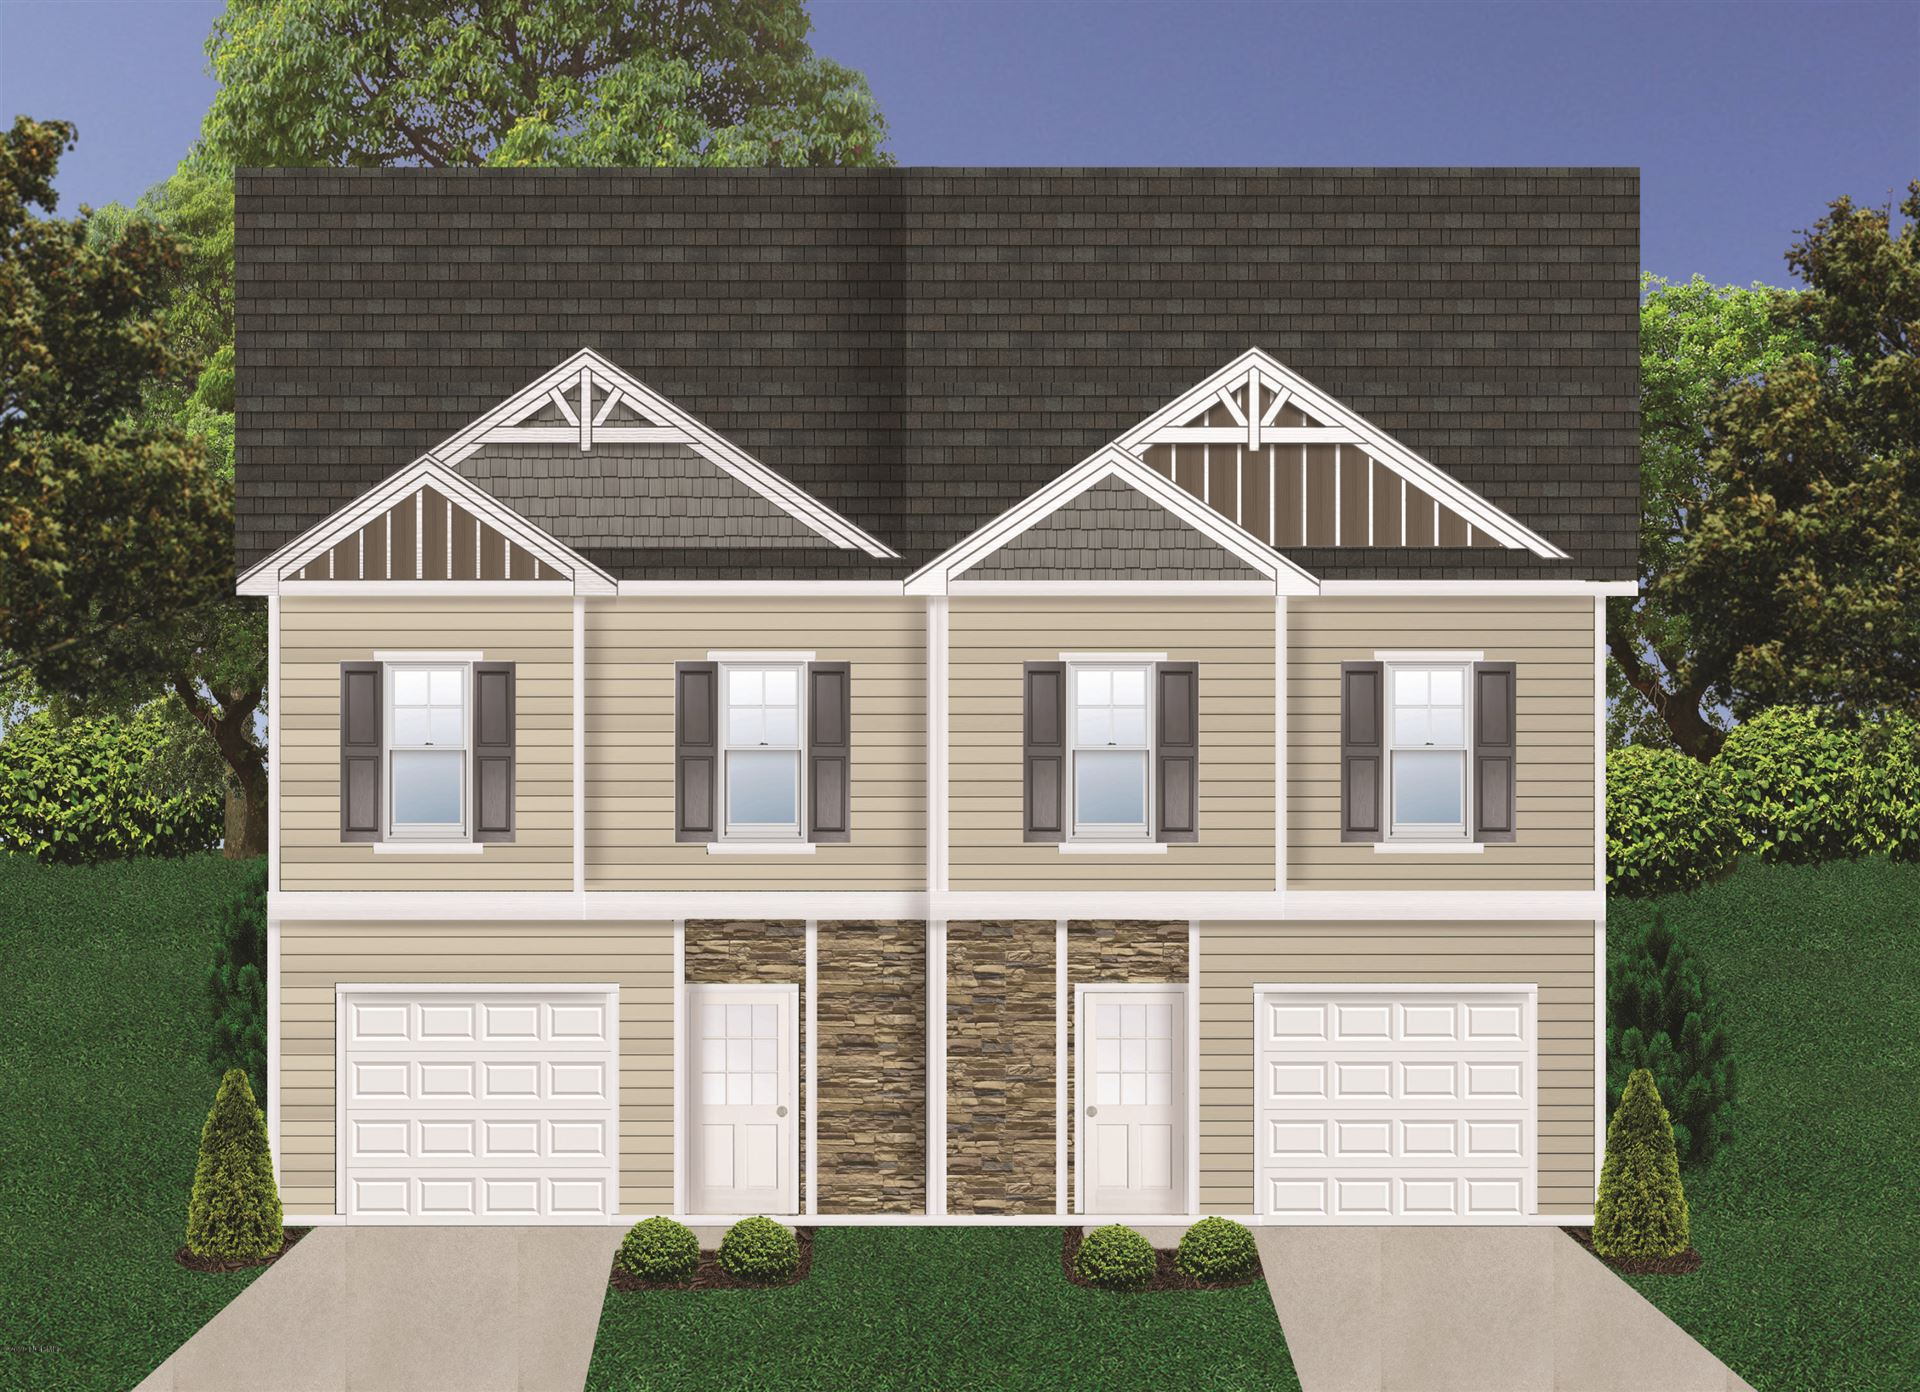 Photo for 421 Vandemere Court, Holly Ridge, NC 28445 (MLS # 100265180)